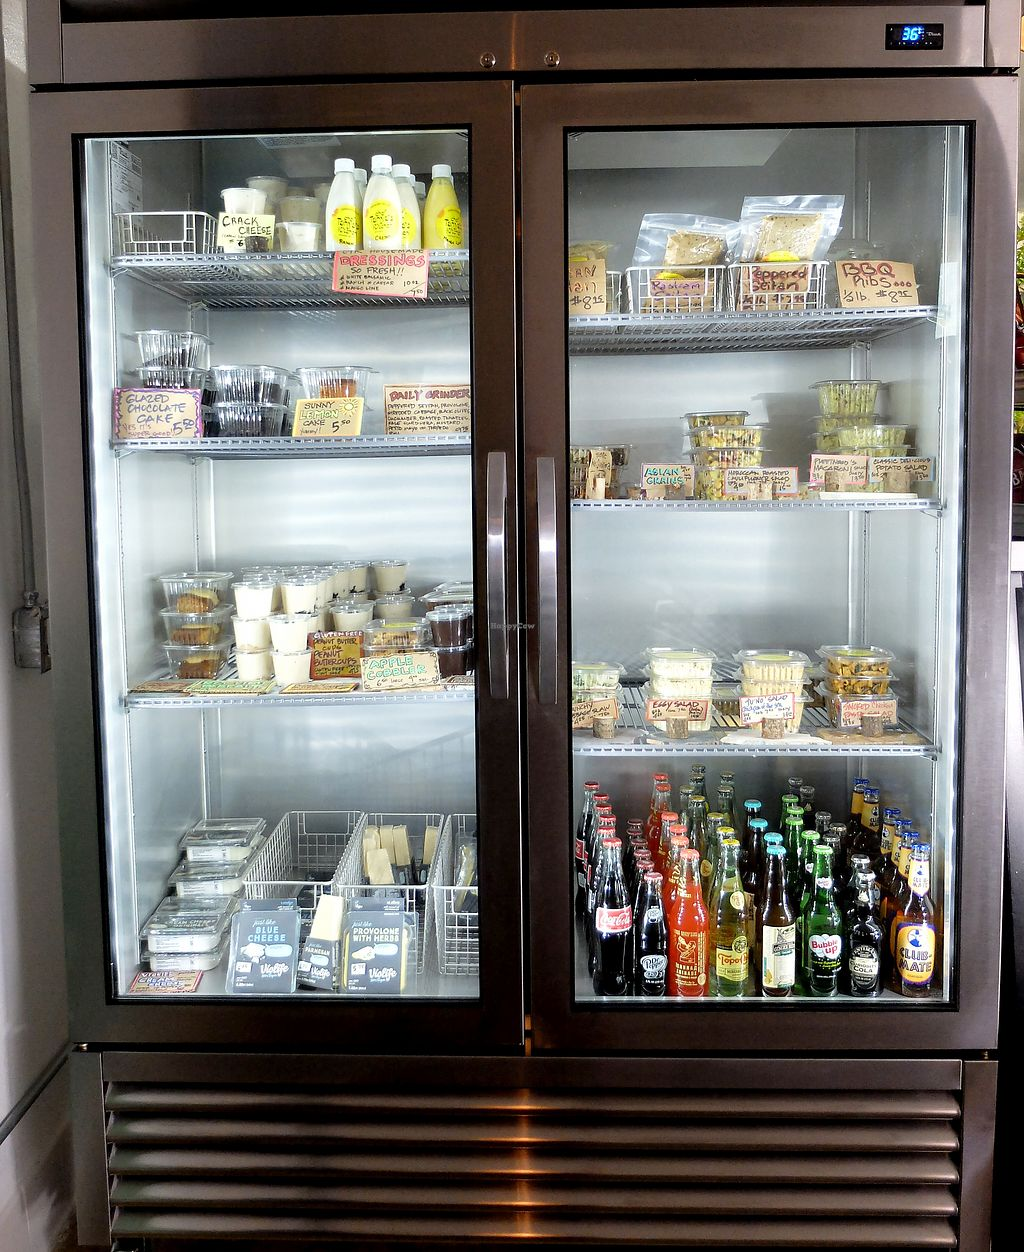 Lots of grab and go and take home items at chef tanyas kitchen in palm springs